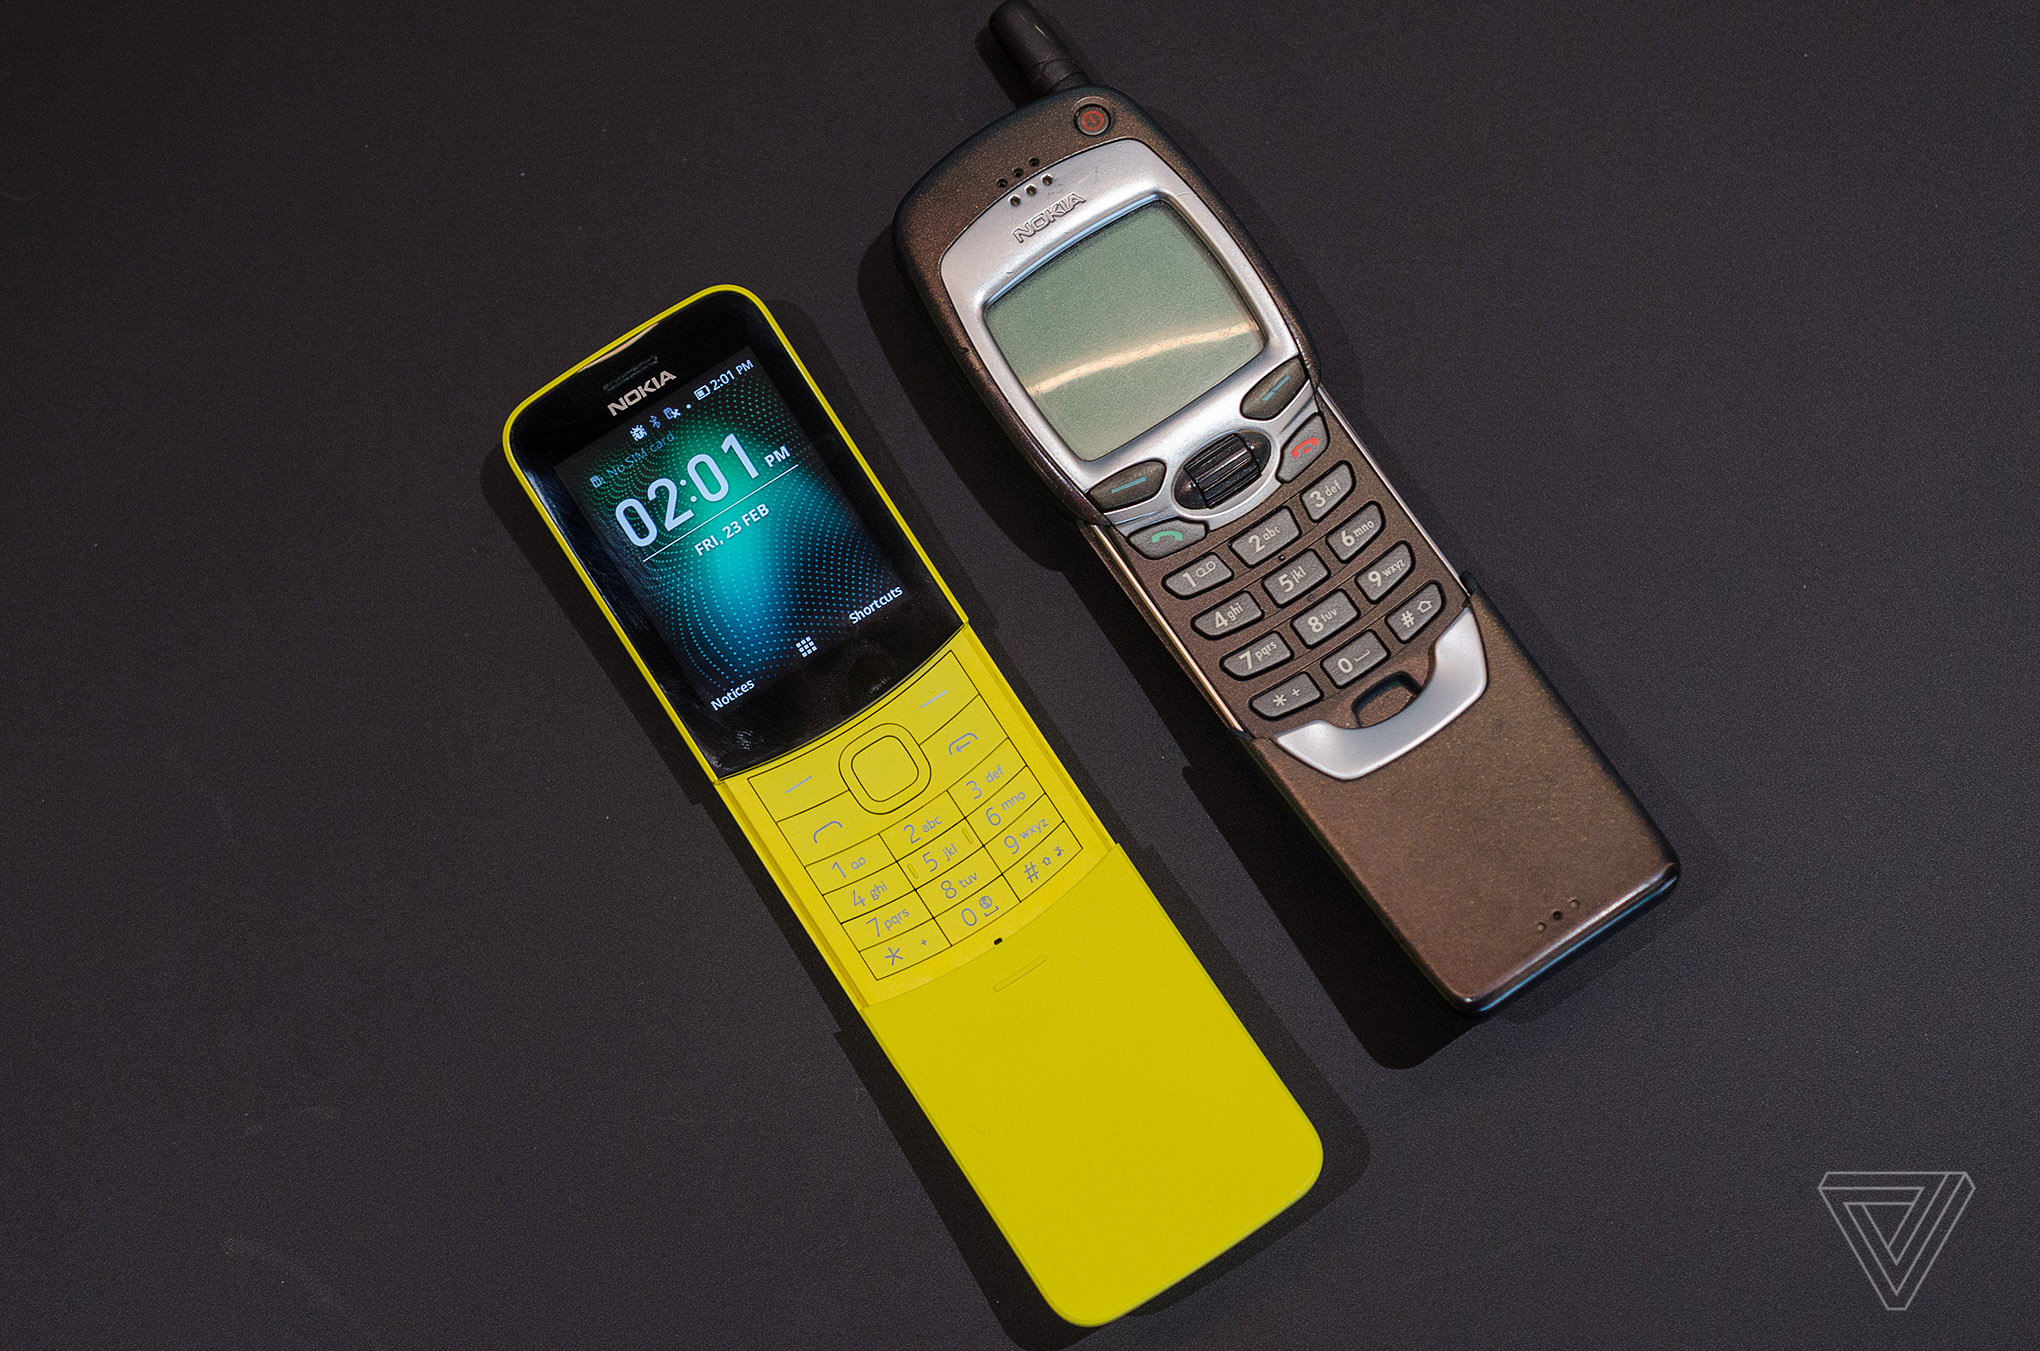 Nokias Banana Phone From The Matrix Is Back Verge Mobile Circuit Board History Photo By Tom Warren